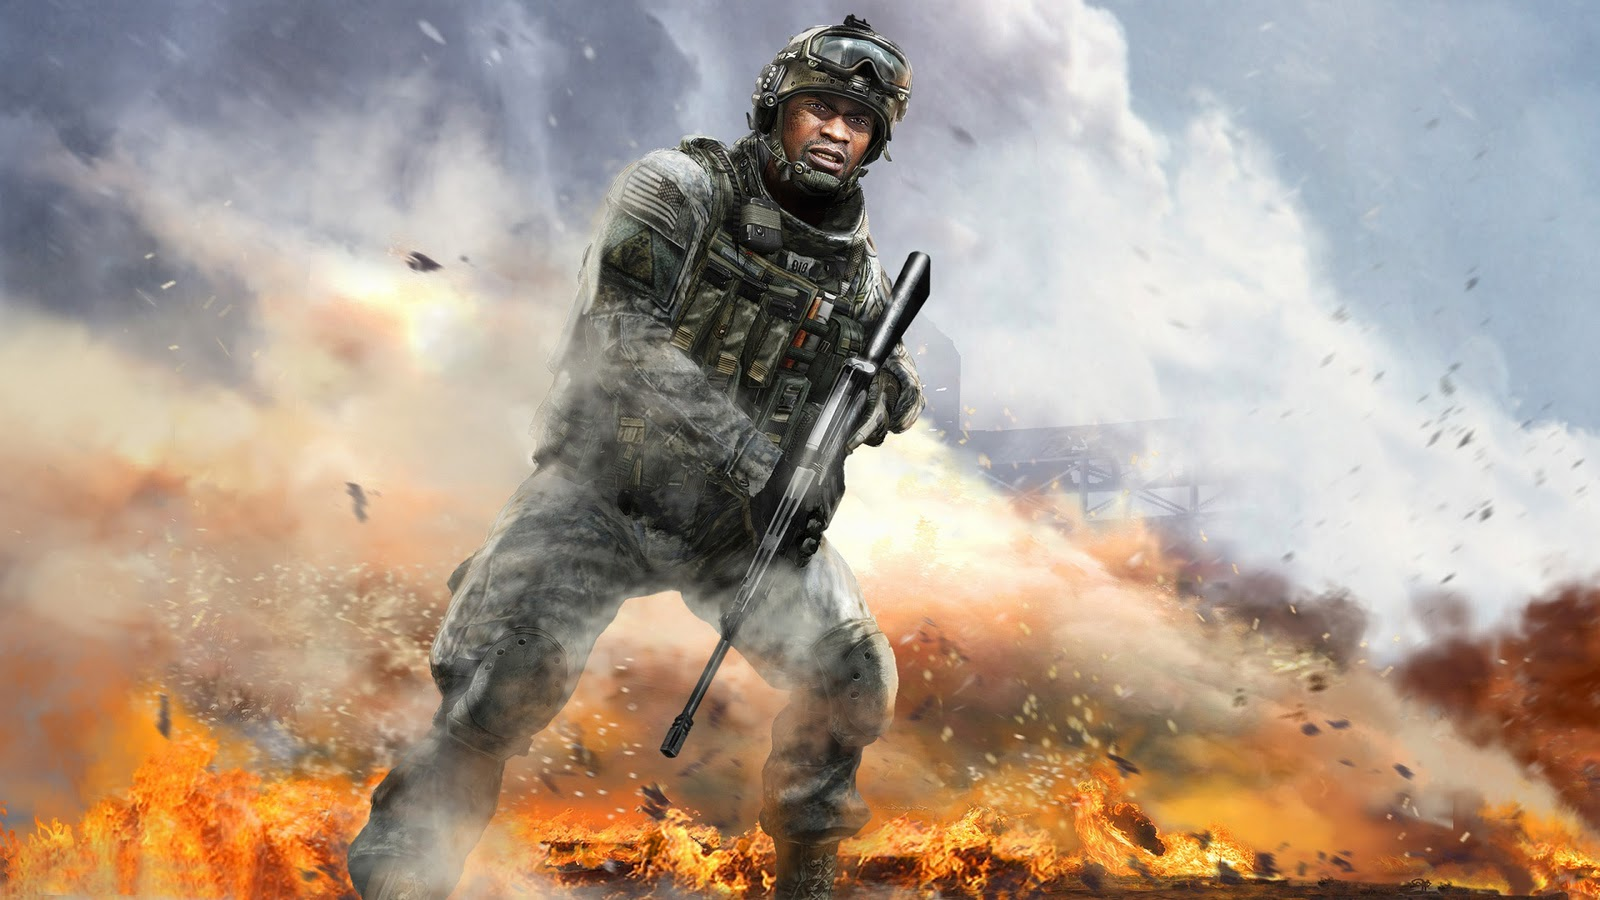 Call Of Duty Wallpaper Hd: Call Of Duty Latest HD Wallpapers